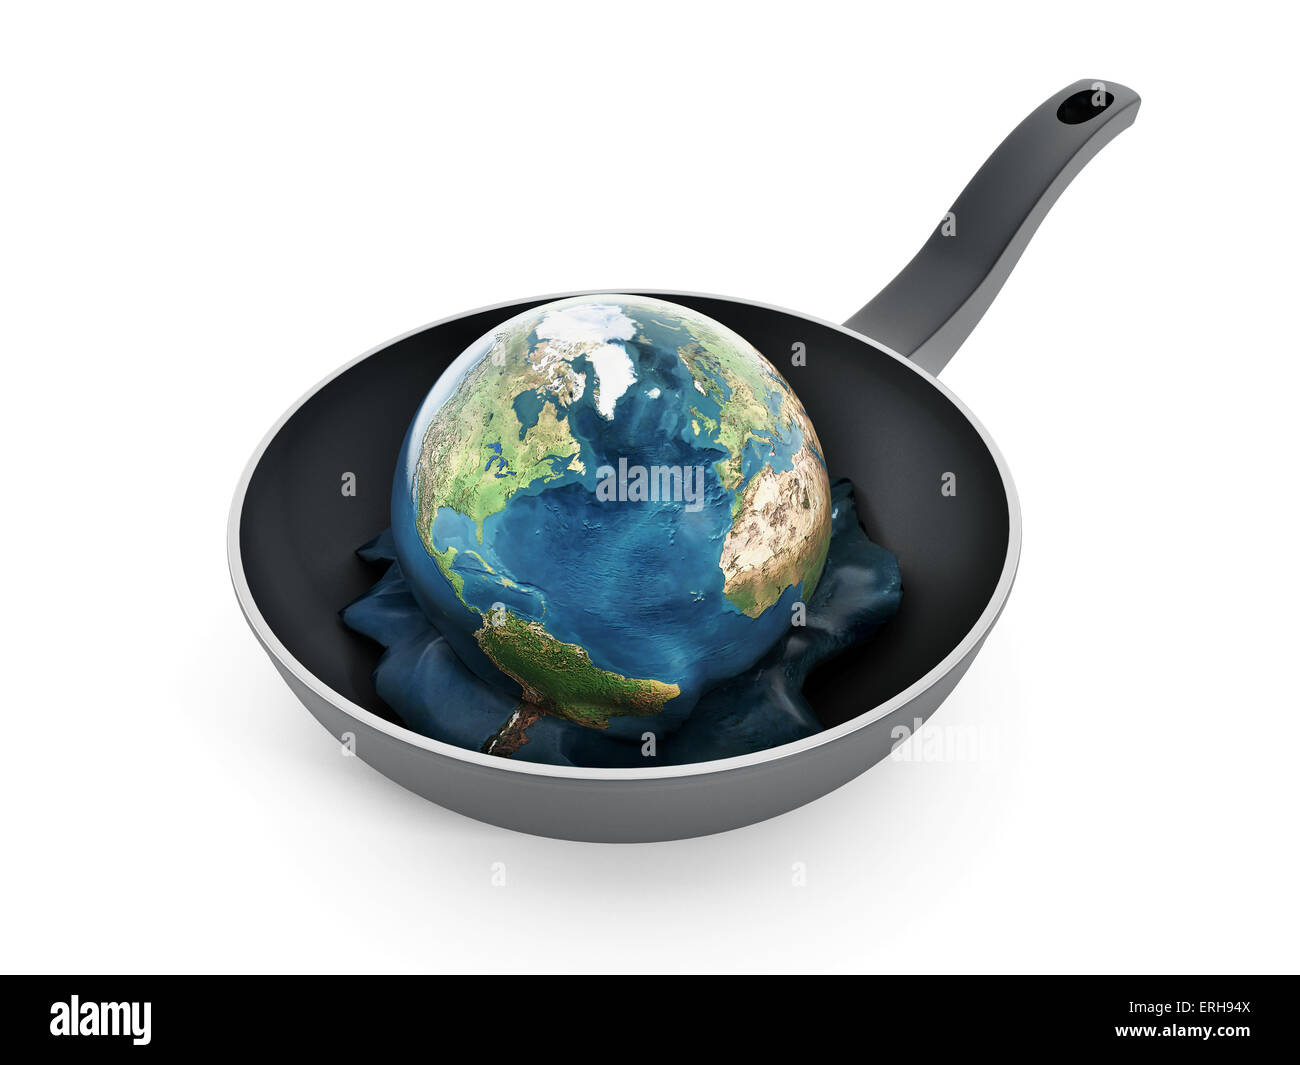 Global warming concept with globe melting inside the pan. - Stock Image